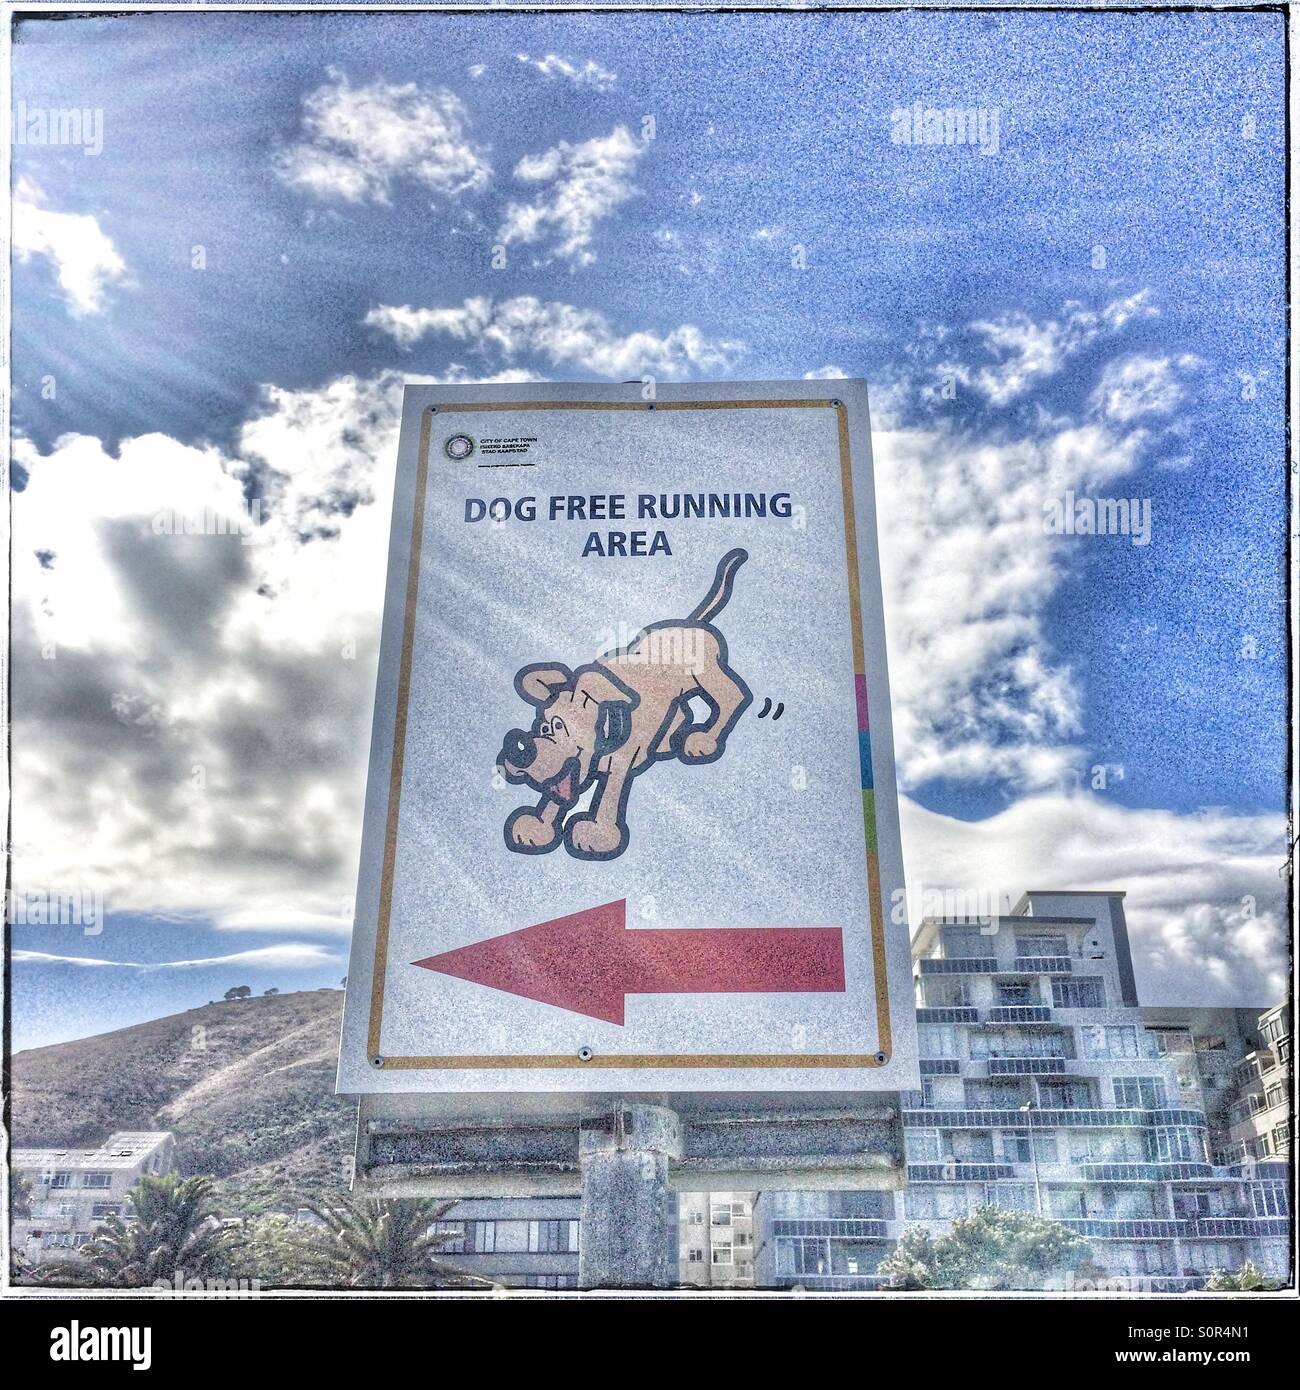 'Dog free running area' sign along the Seapoint Promenade, Cape Town. - Stock Image